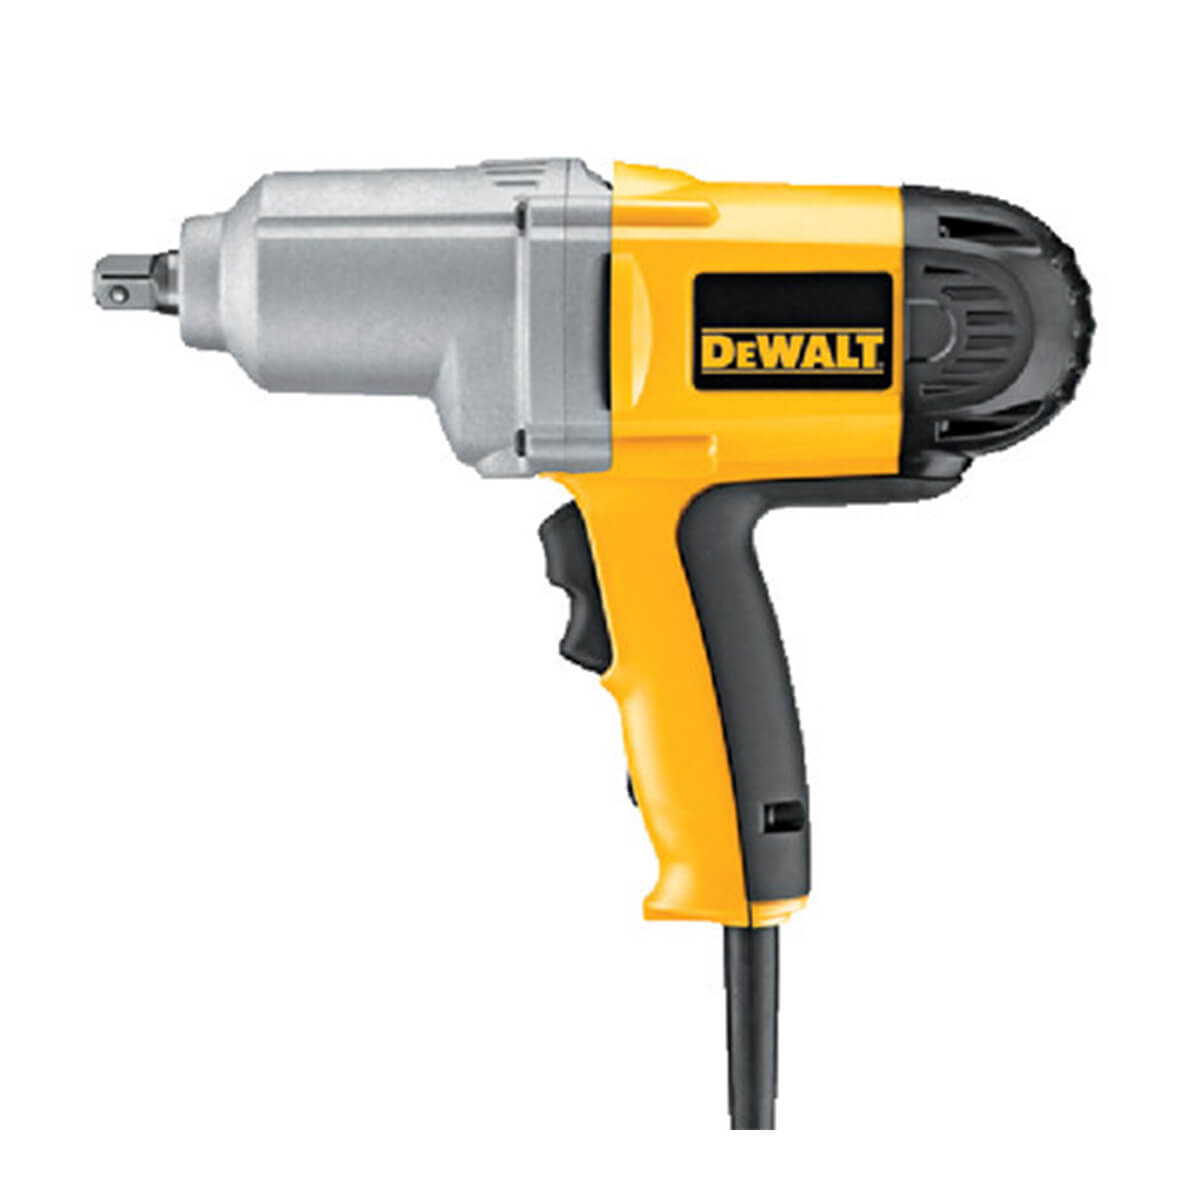 "DEWALT 7.5 Amp 1/2"" Impact Wrench with Detent Pin Anvil - DW292"